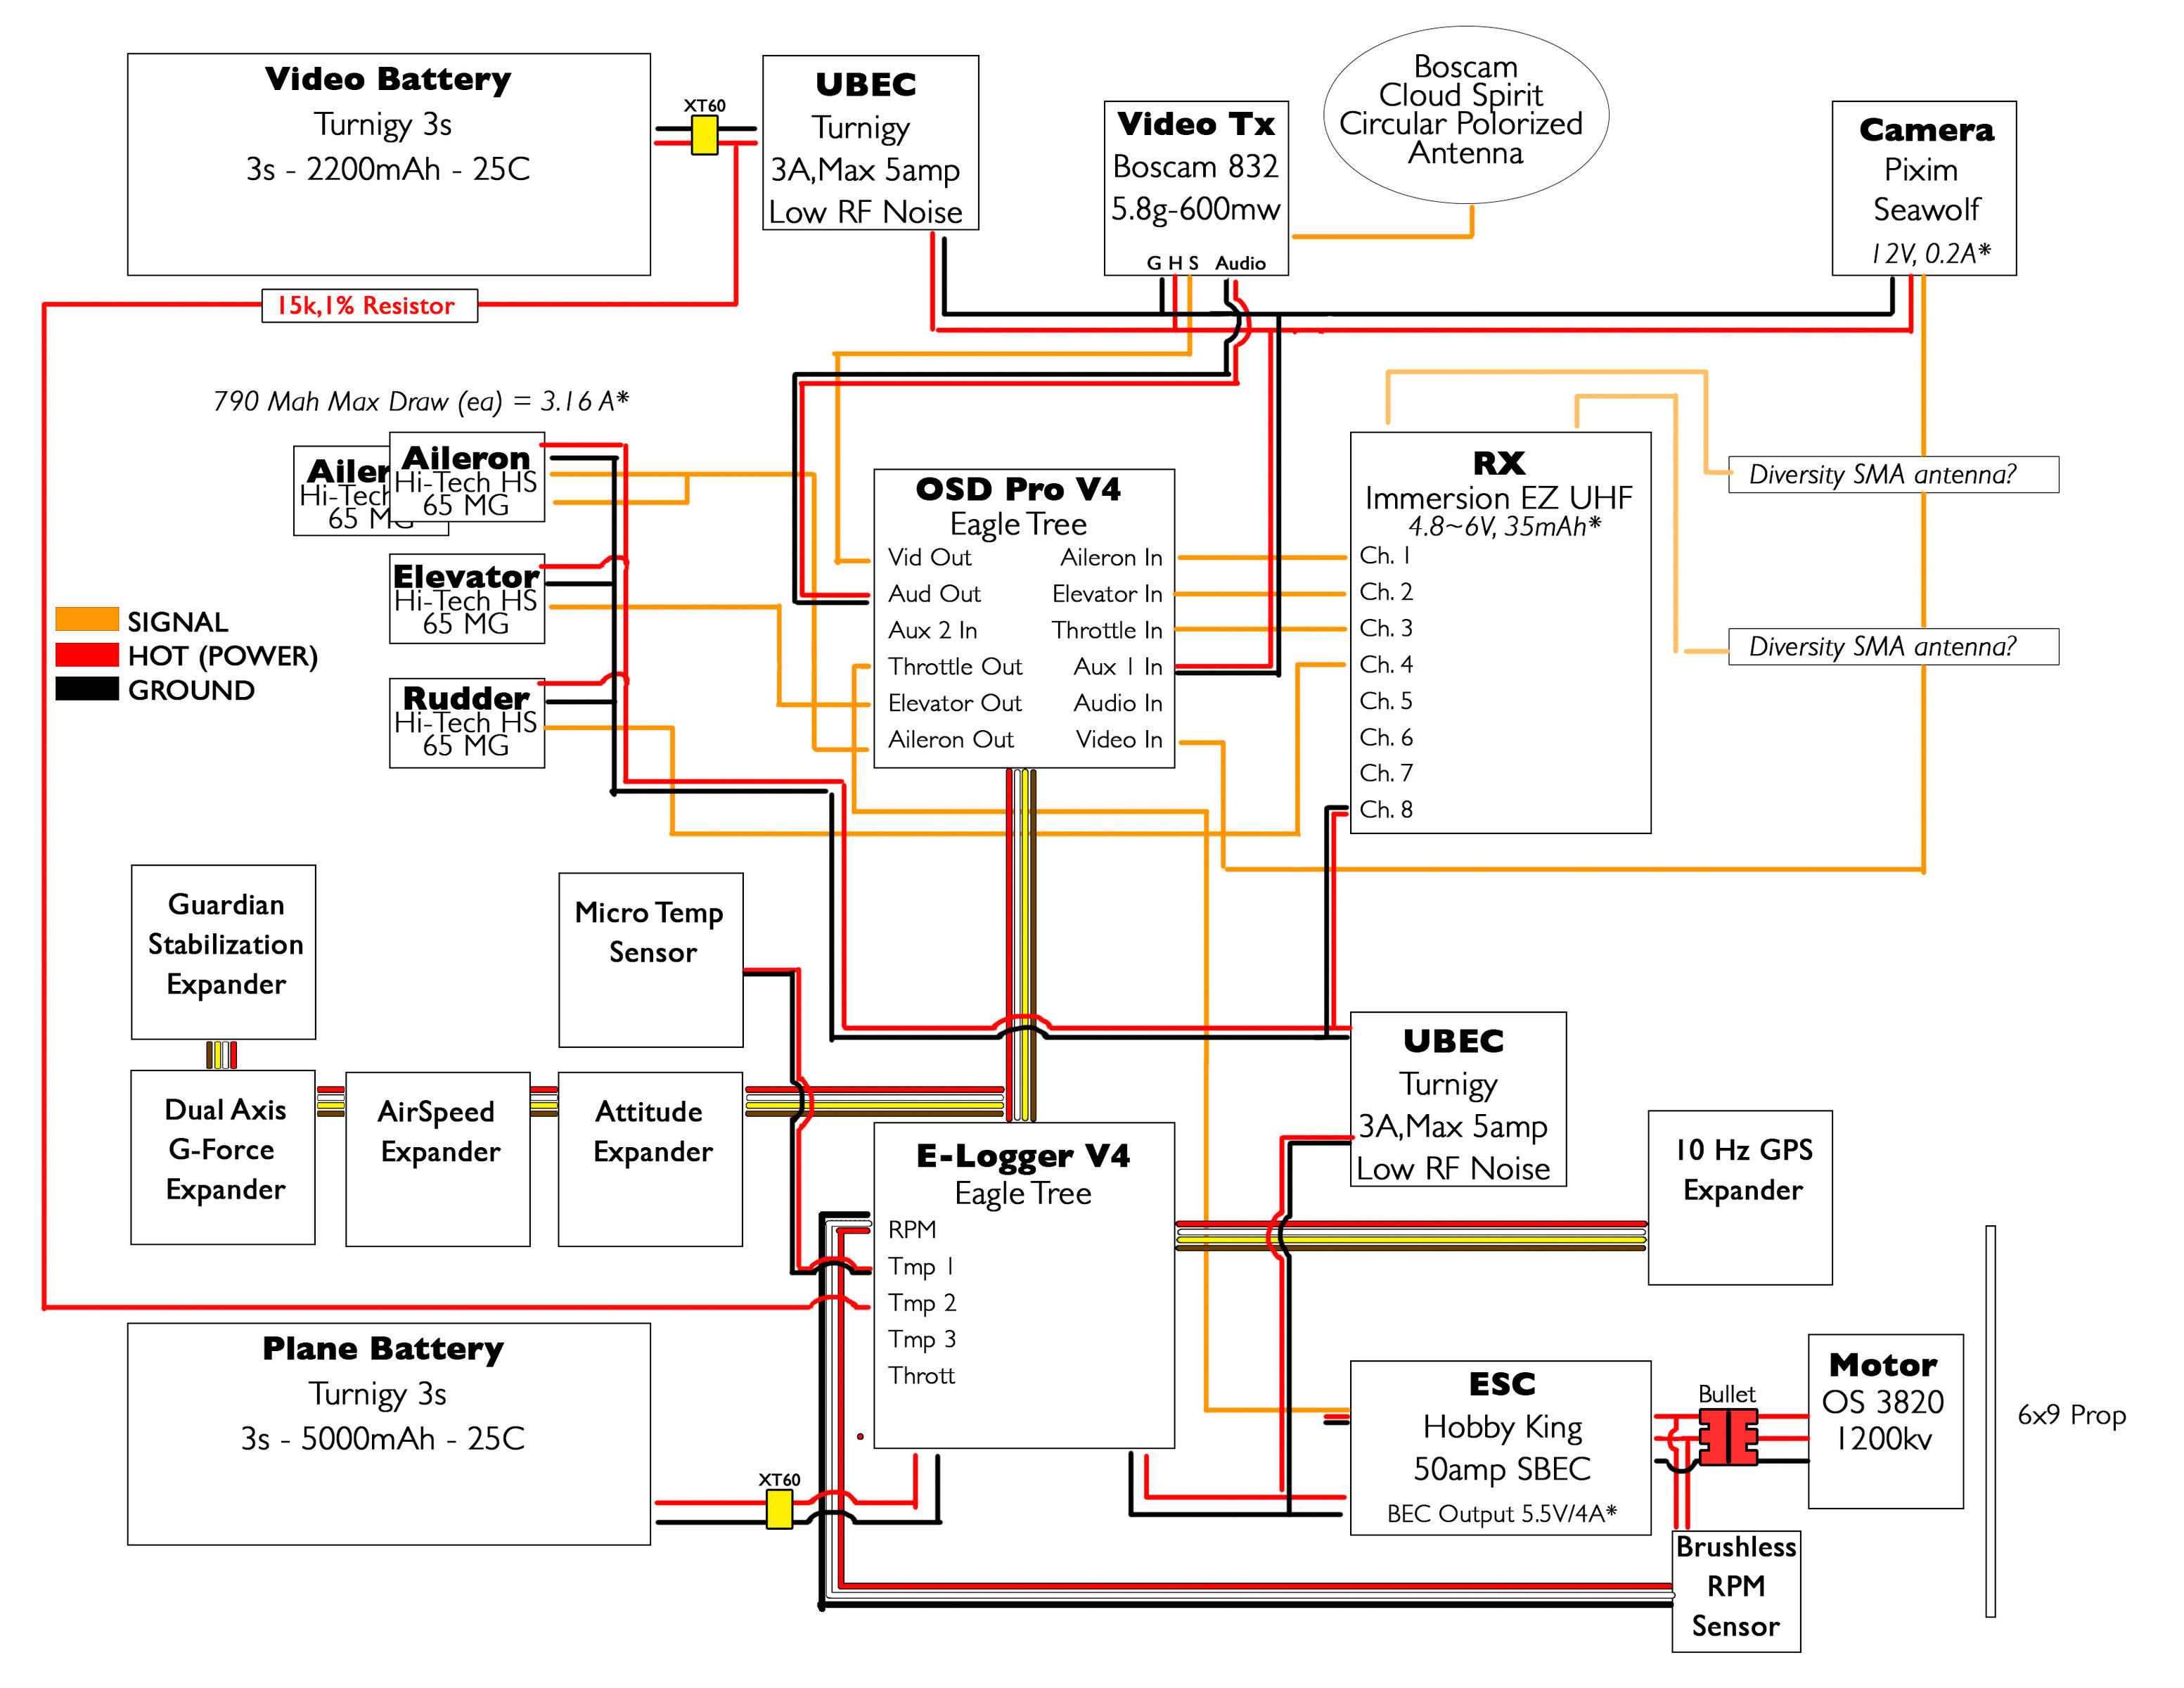 Lovely drone and fpv wiring diagram images electrical circuit fpv with five wire wiring diagram dolgular asfbconference2016 Image collections